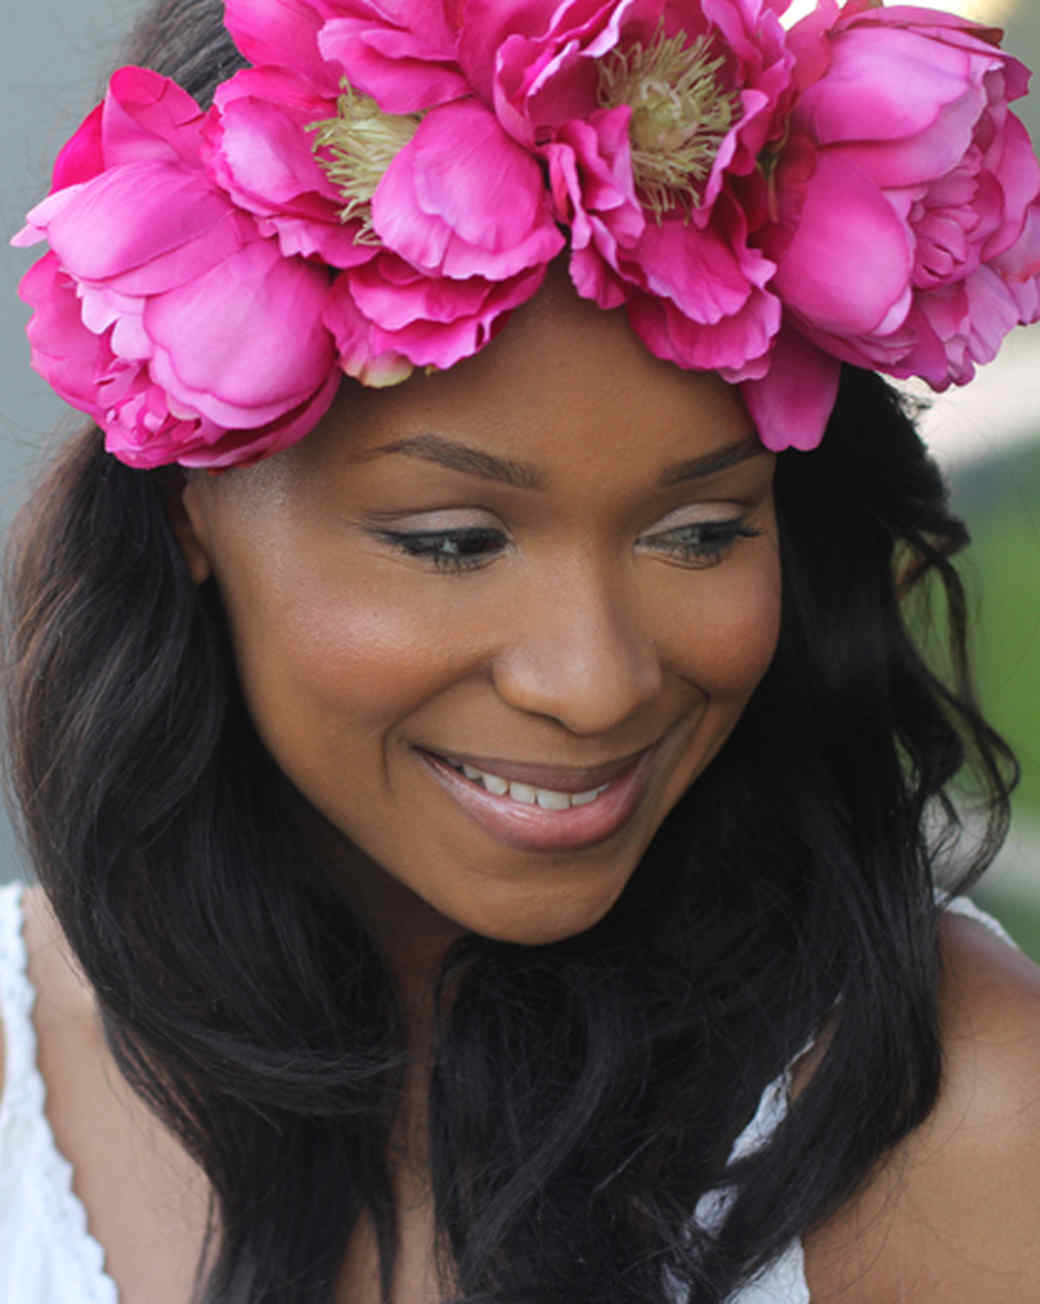 floral-crown-frugal-nomics-01-0814.jpg